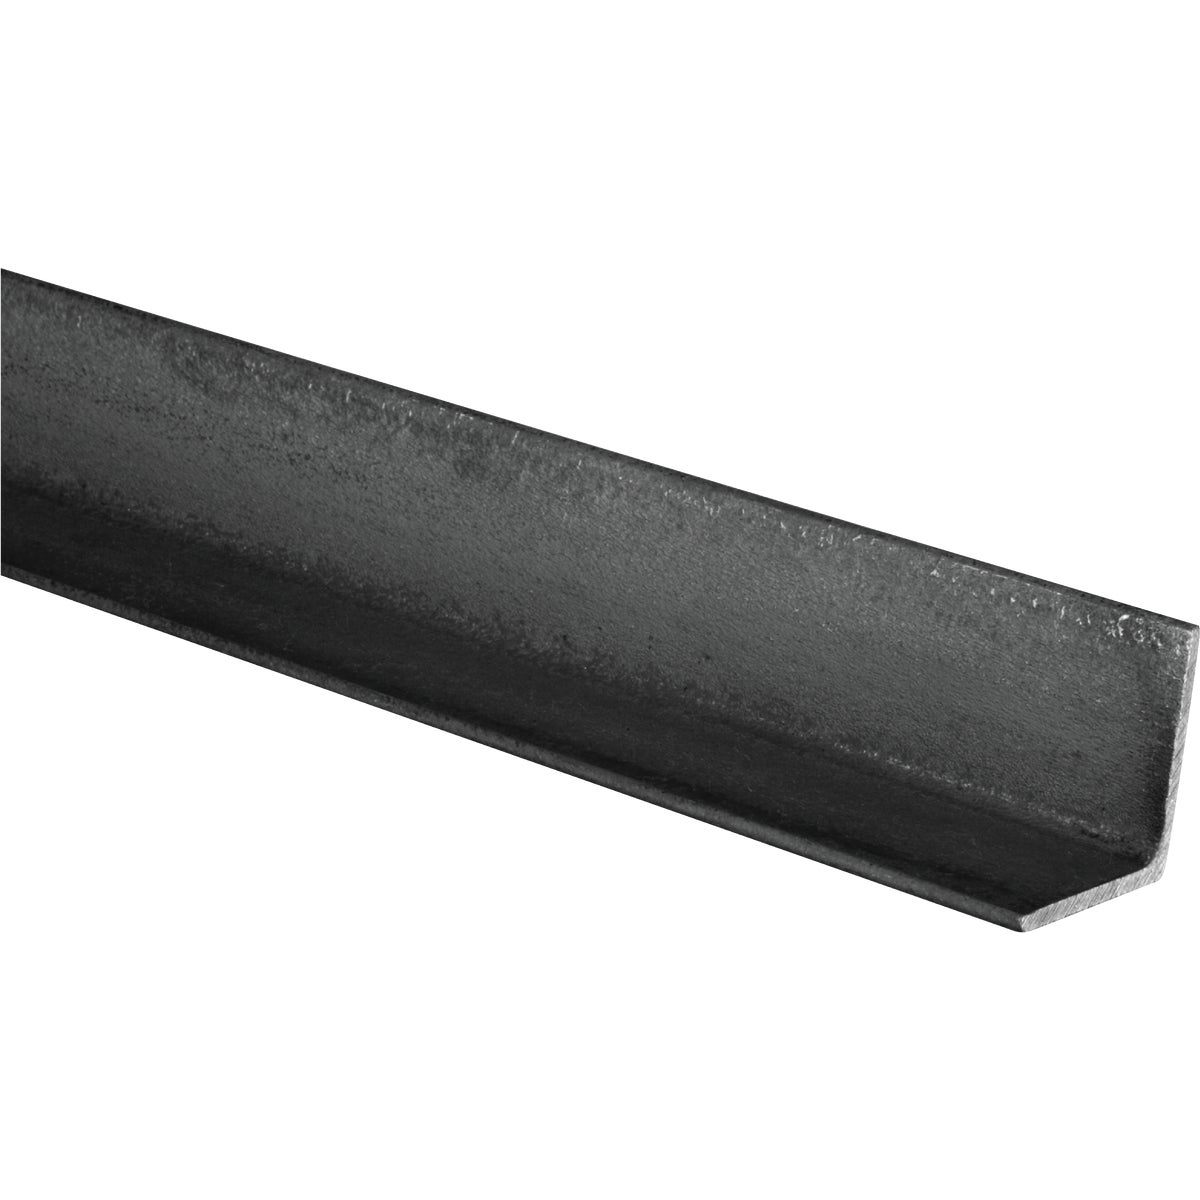 1/8X1-1/2X4' HR ANGLE - N215467 by National Mfg Co